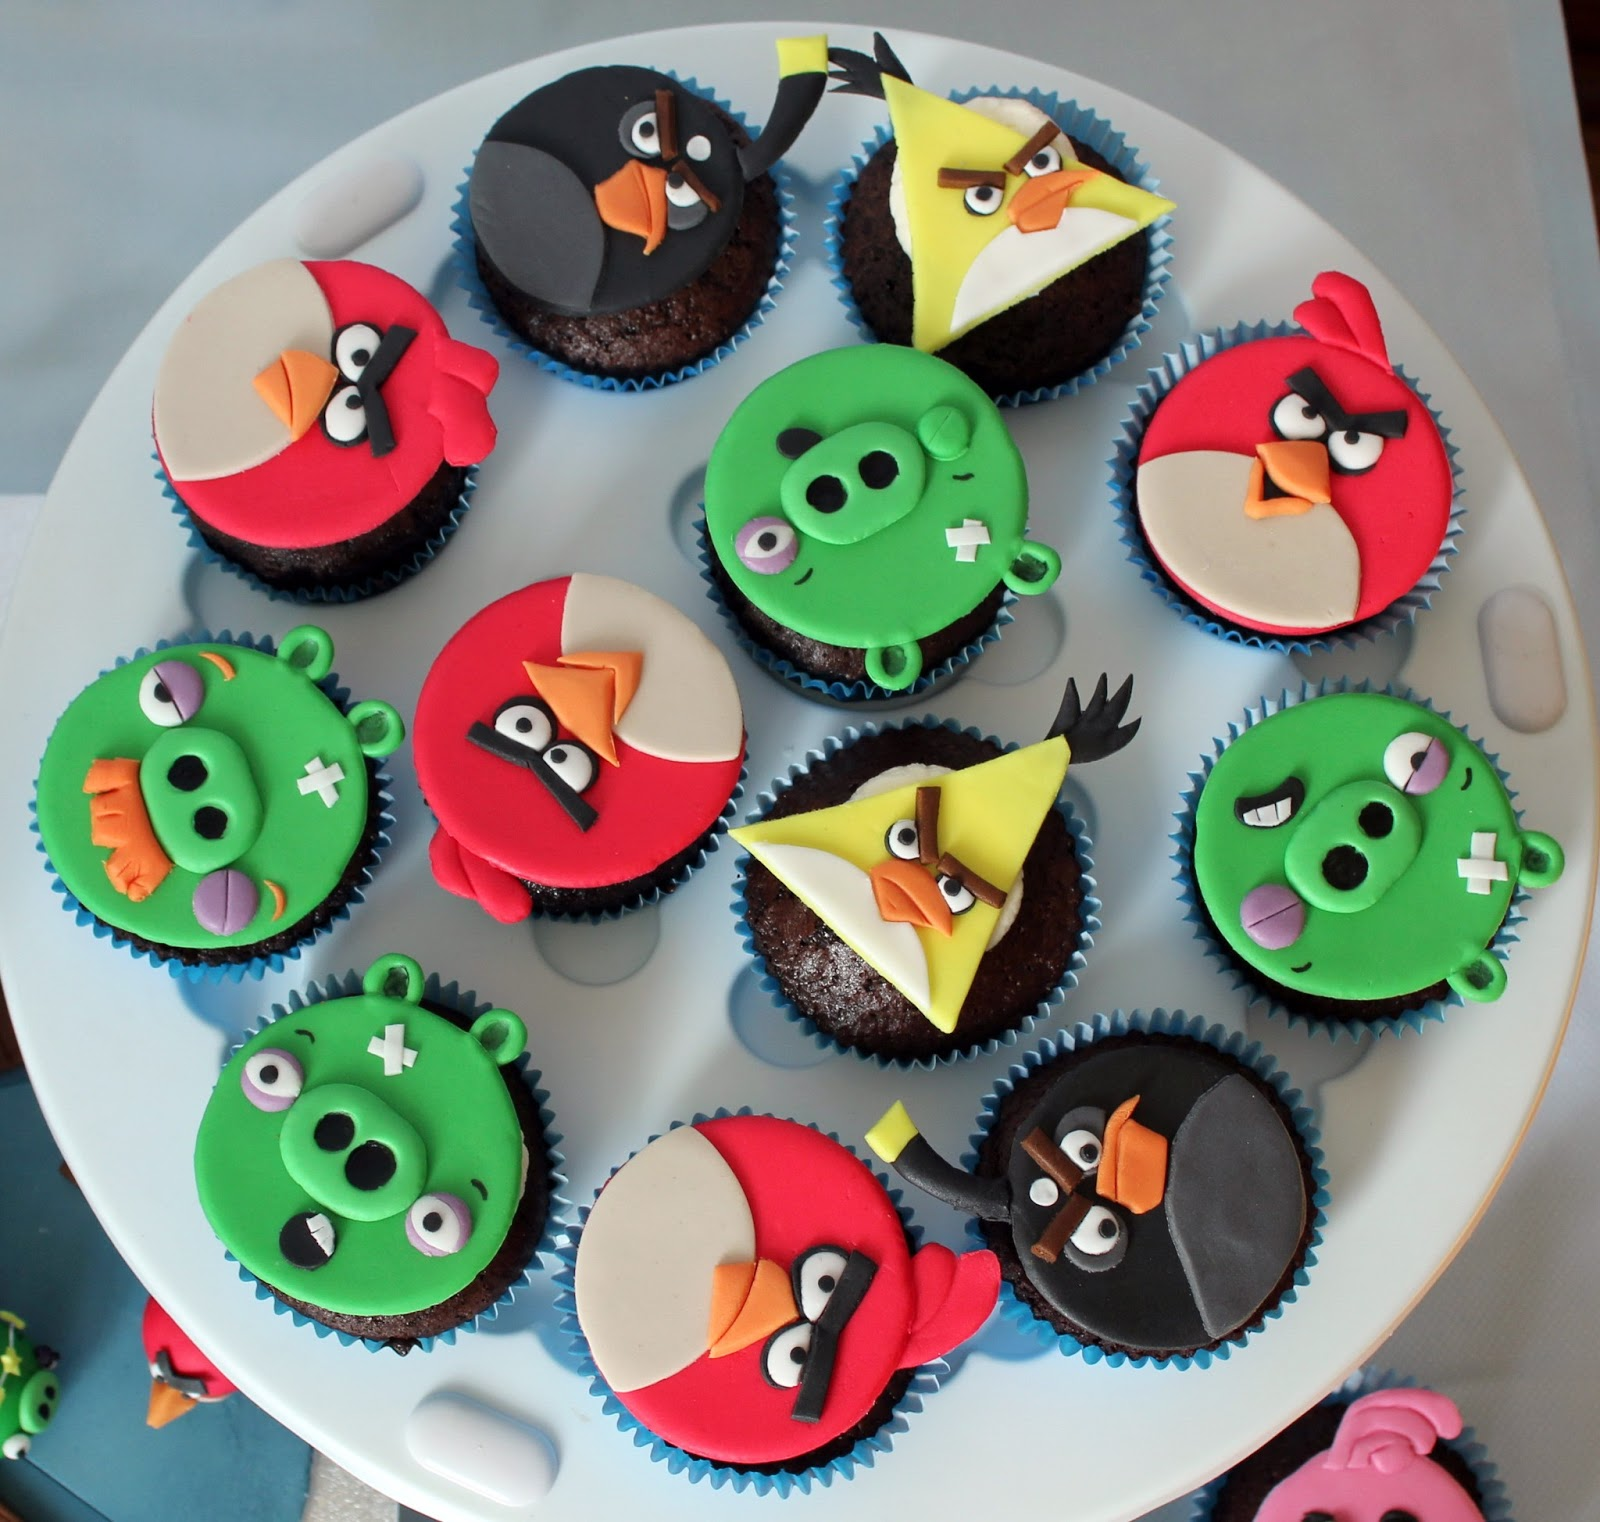 Discount Kids Party Supplies, Free Same Day Shipping at Angry birds edible cupcake images